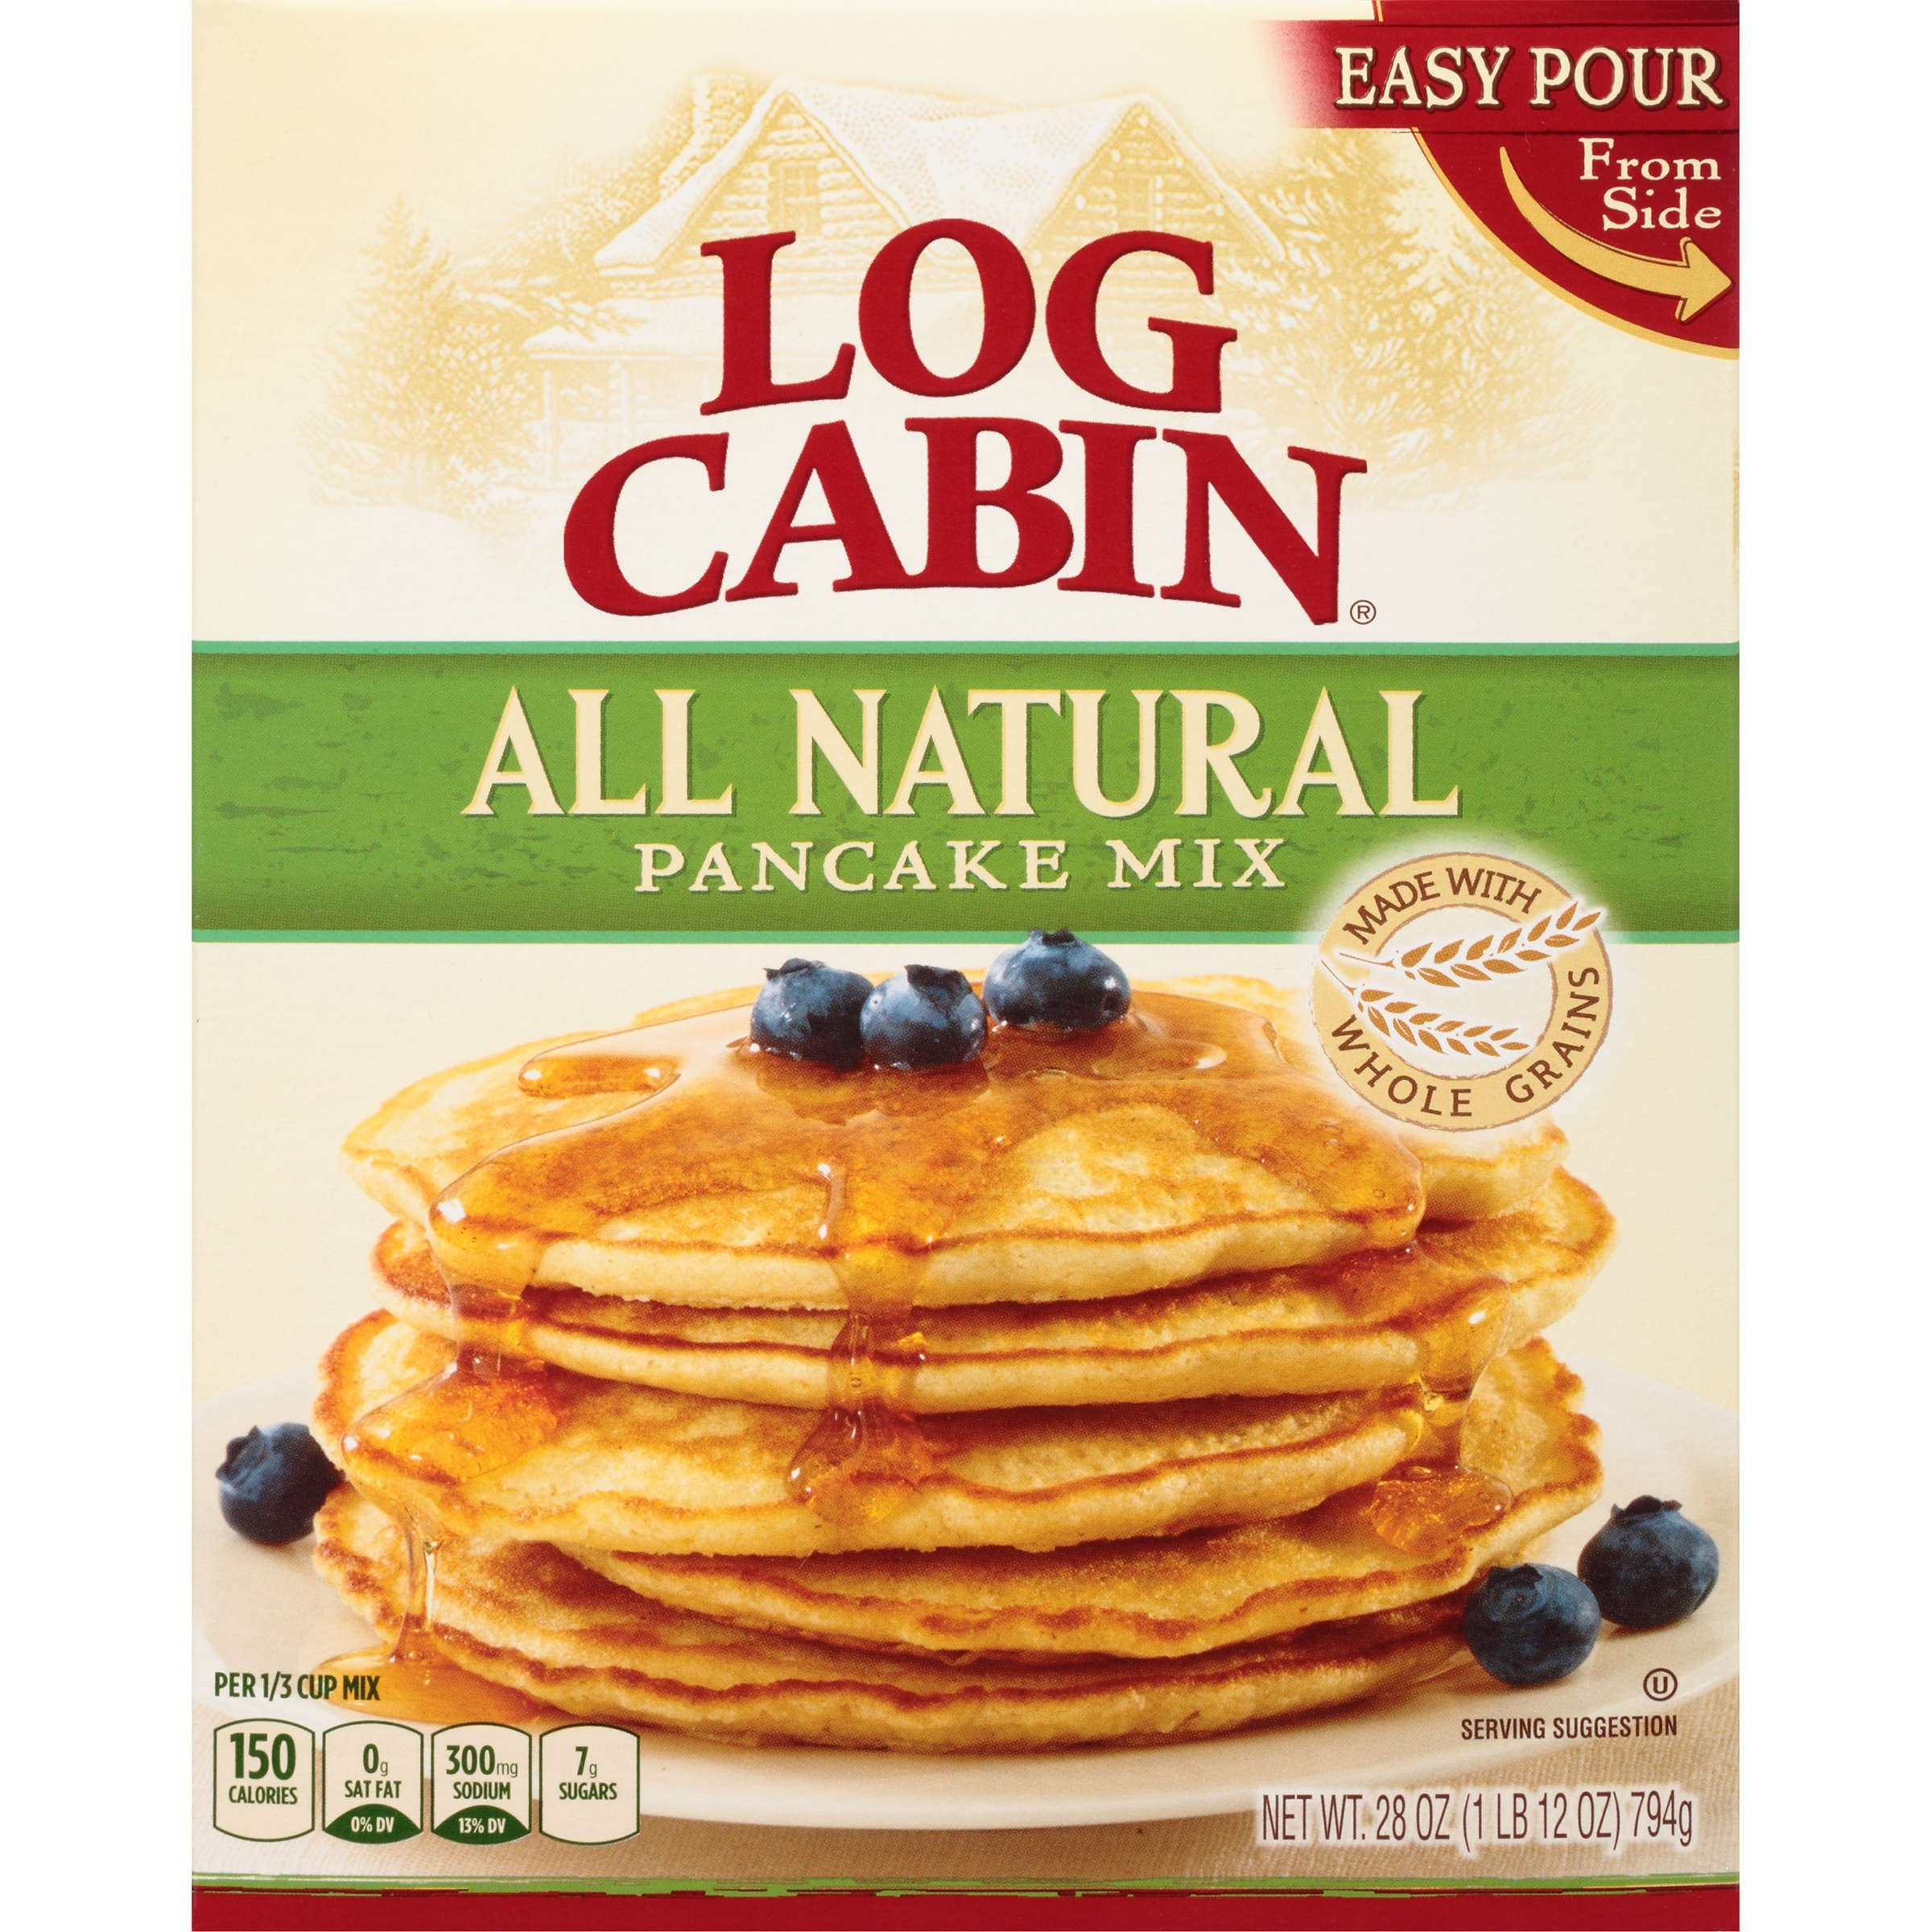 Log Cabin All Natural Pancake Mix, 28 Ounce (Pack of 12) by Log Cabin